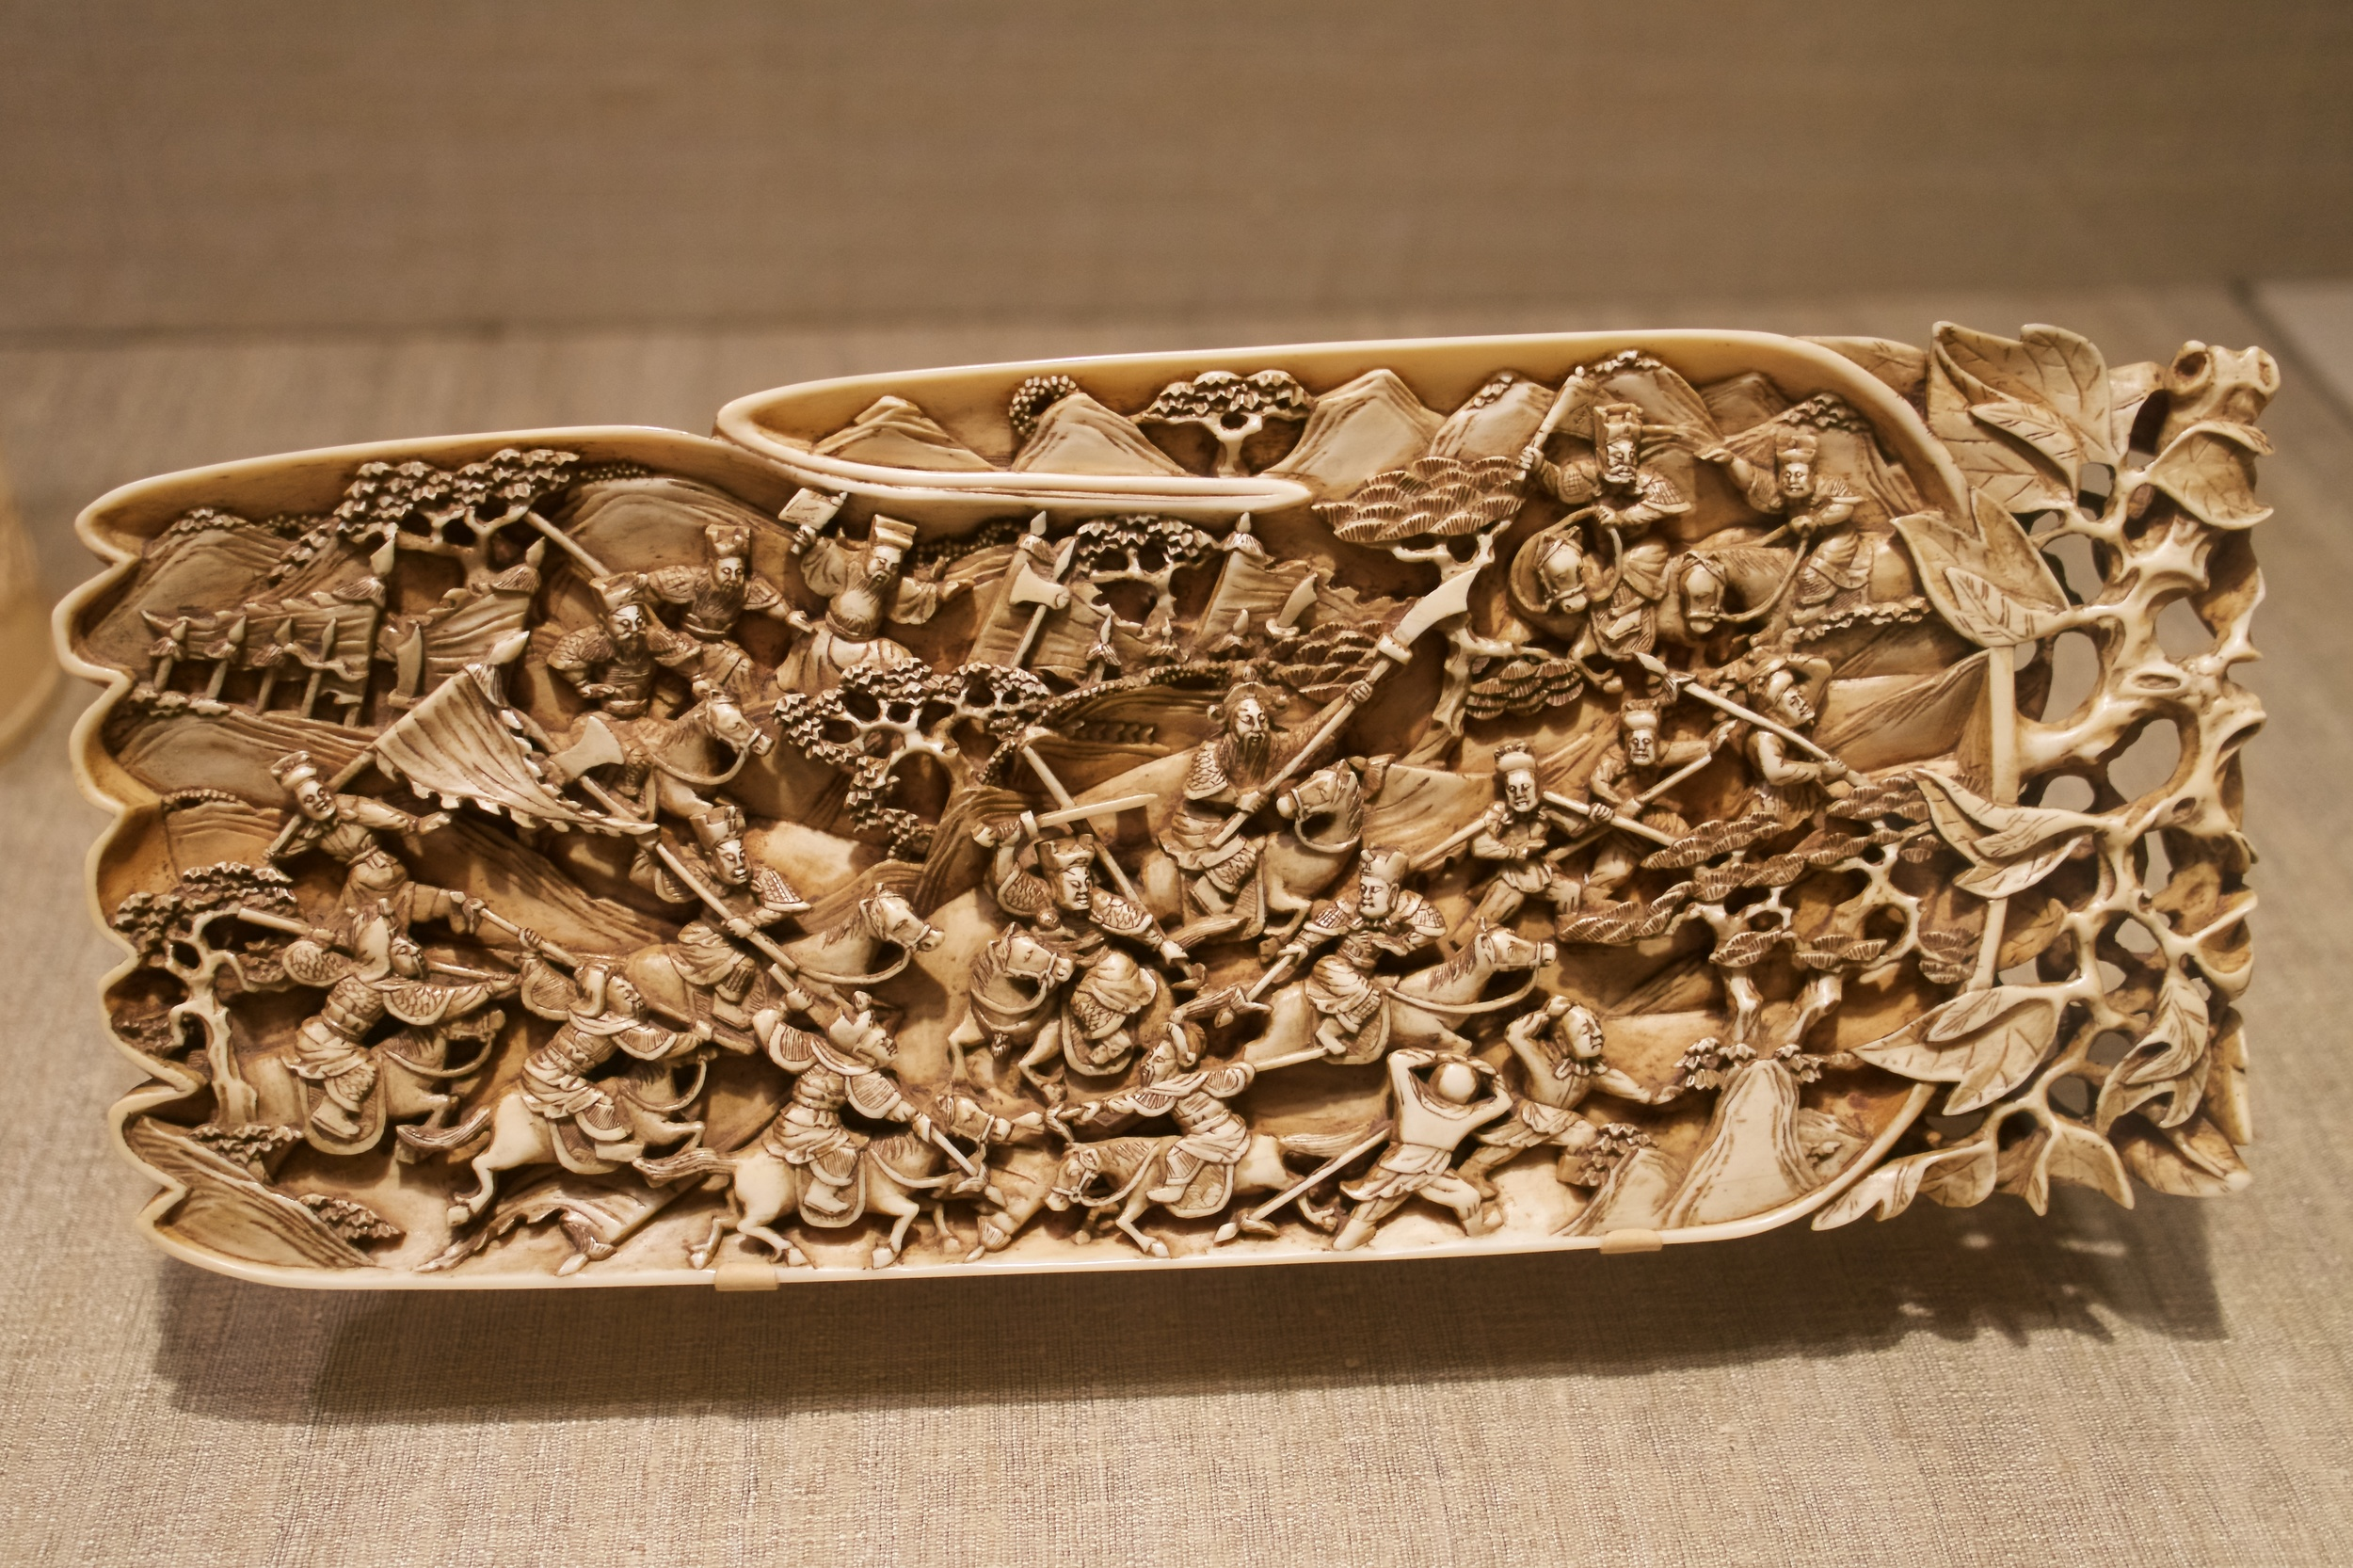 Plaque with Battle Scene, Qing Dynasty